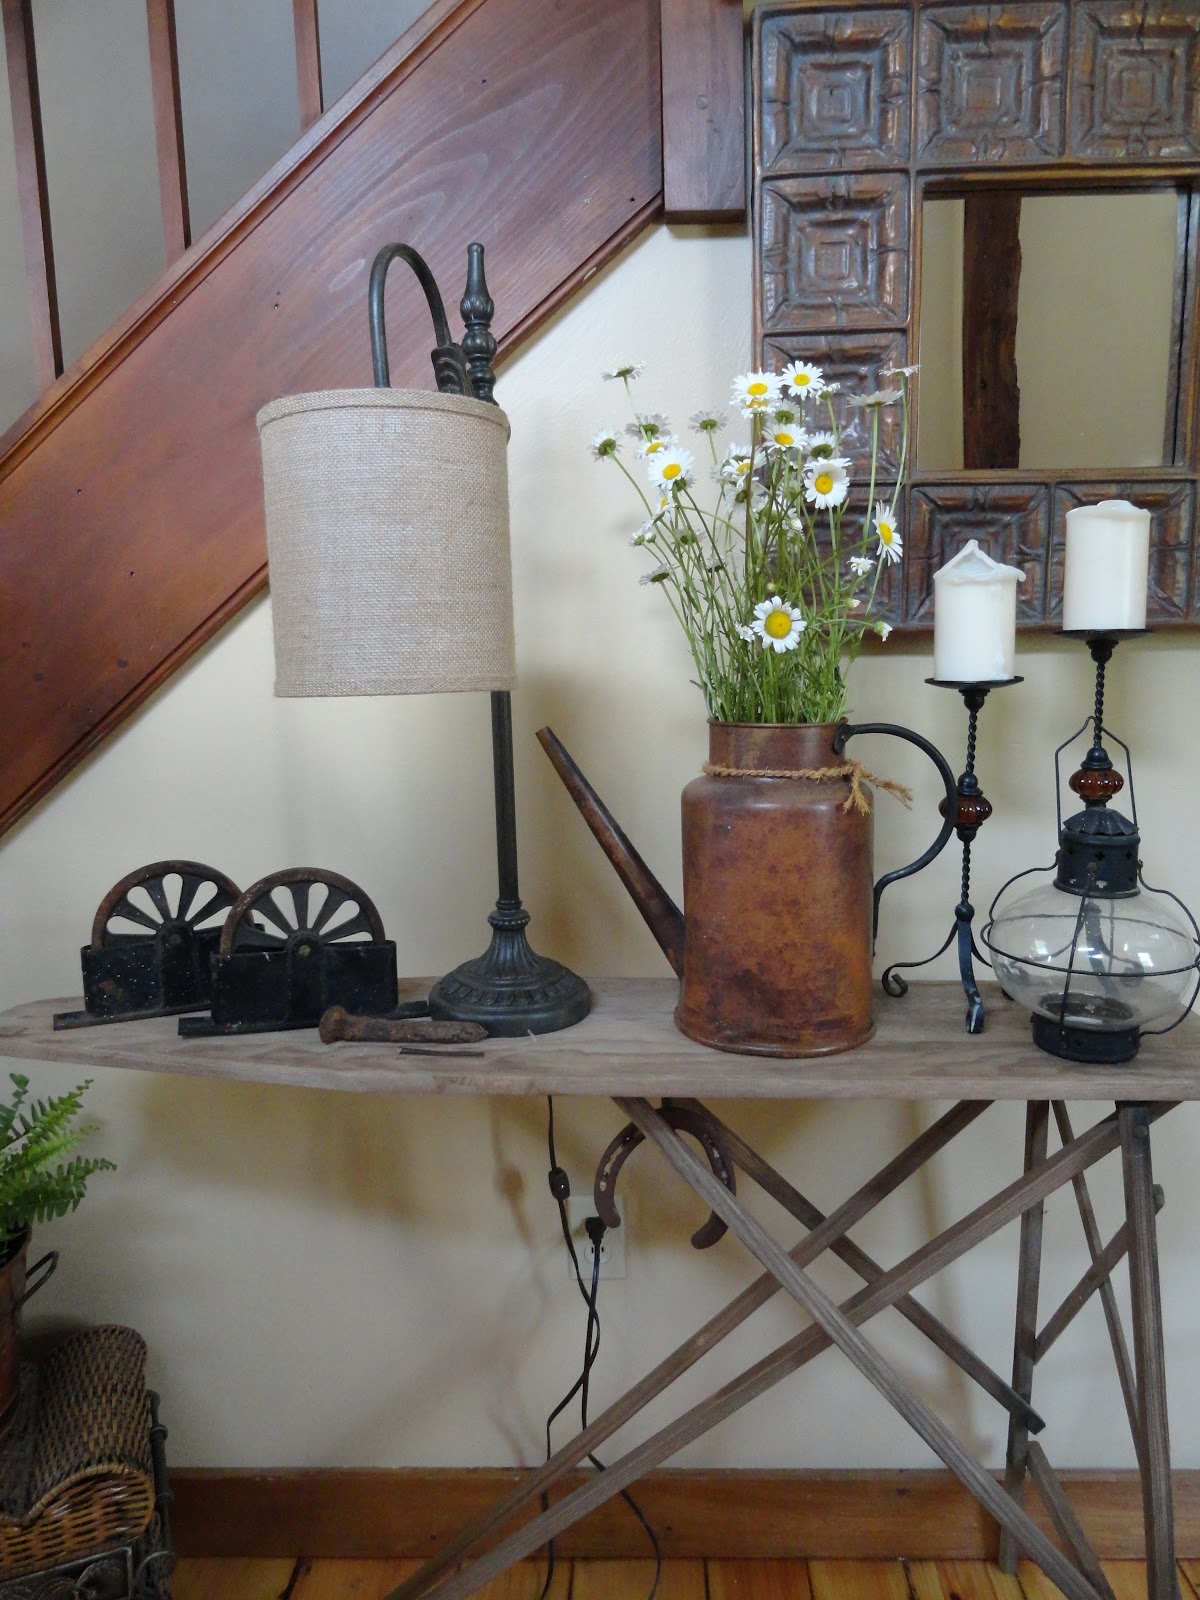 The Long Awaited Home Antique Ironing Board Entry Table